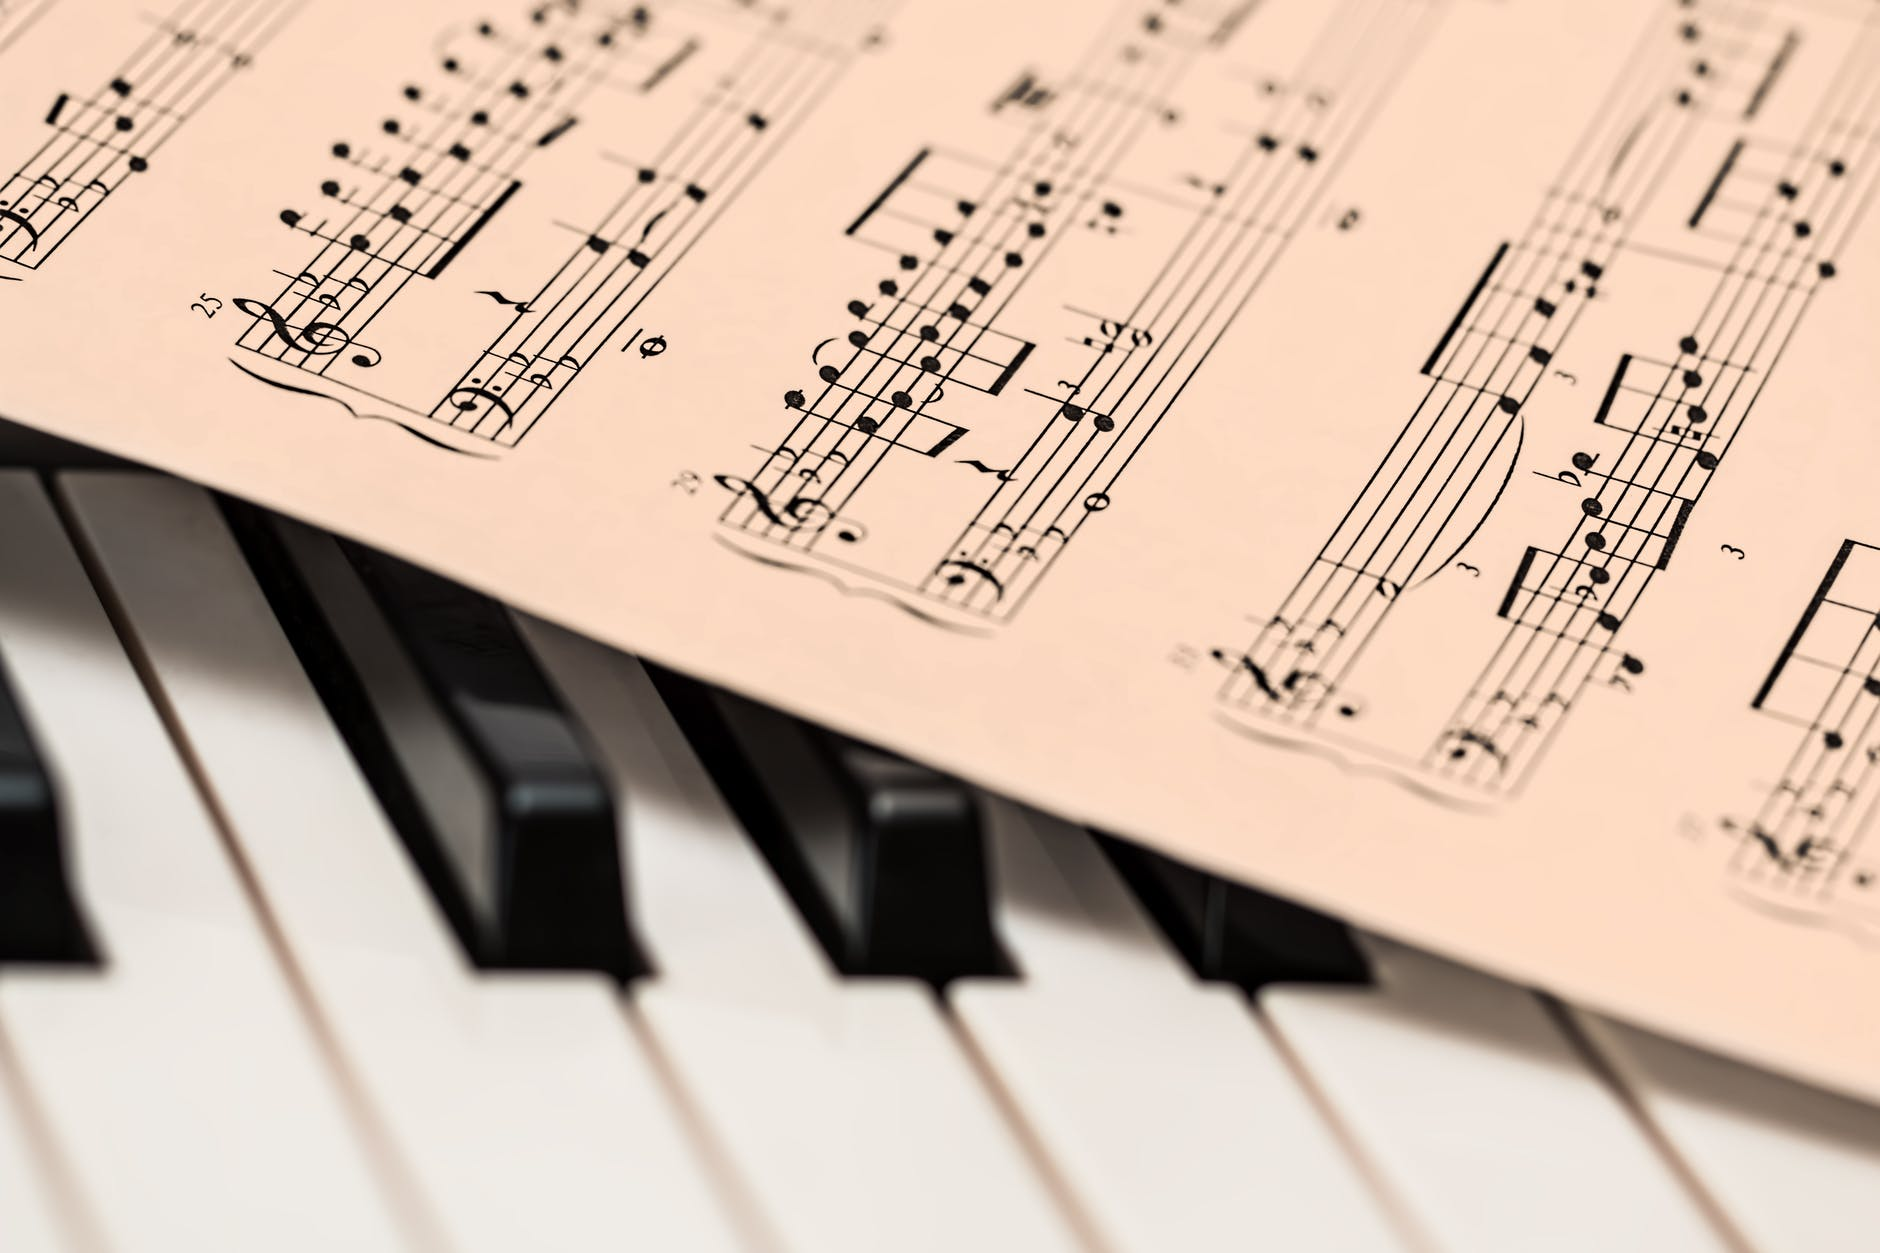 A photo of a page of sheet music lying on top of piano keys.